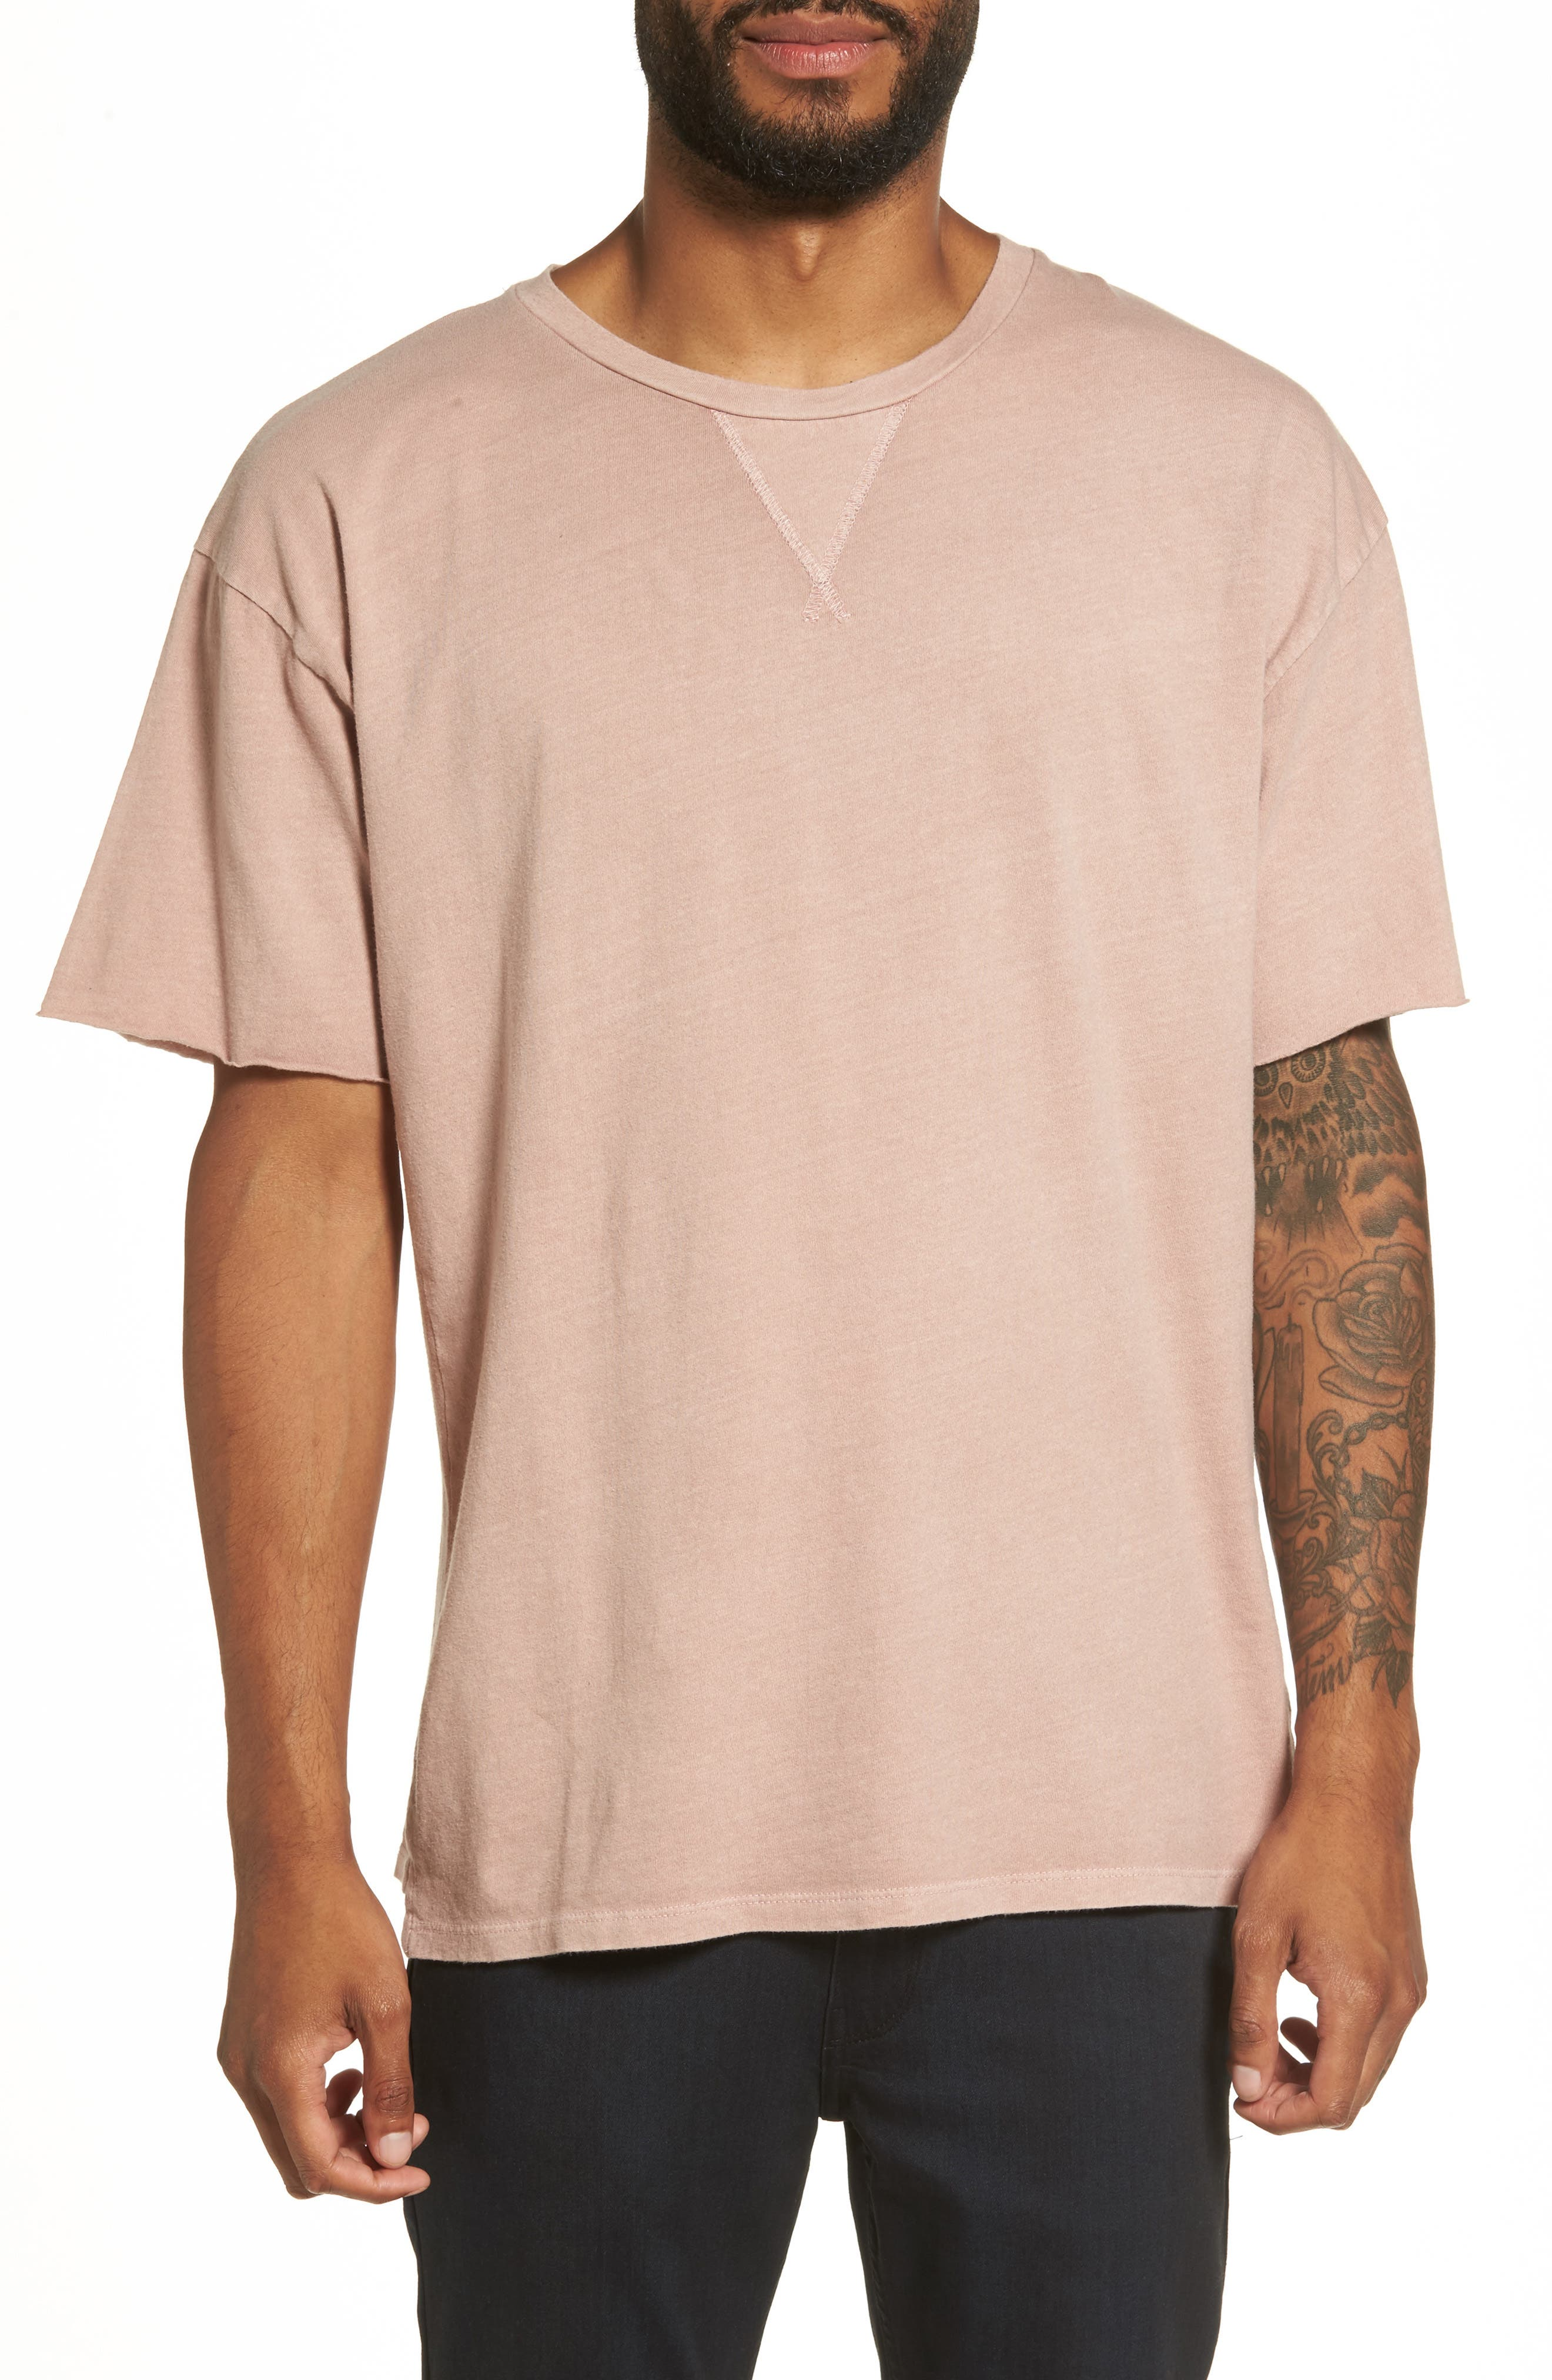 Alternate Image 1 Selected - The Rail Mineral Wash T-Shirt